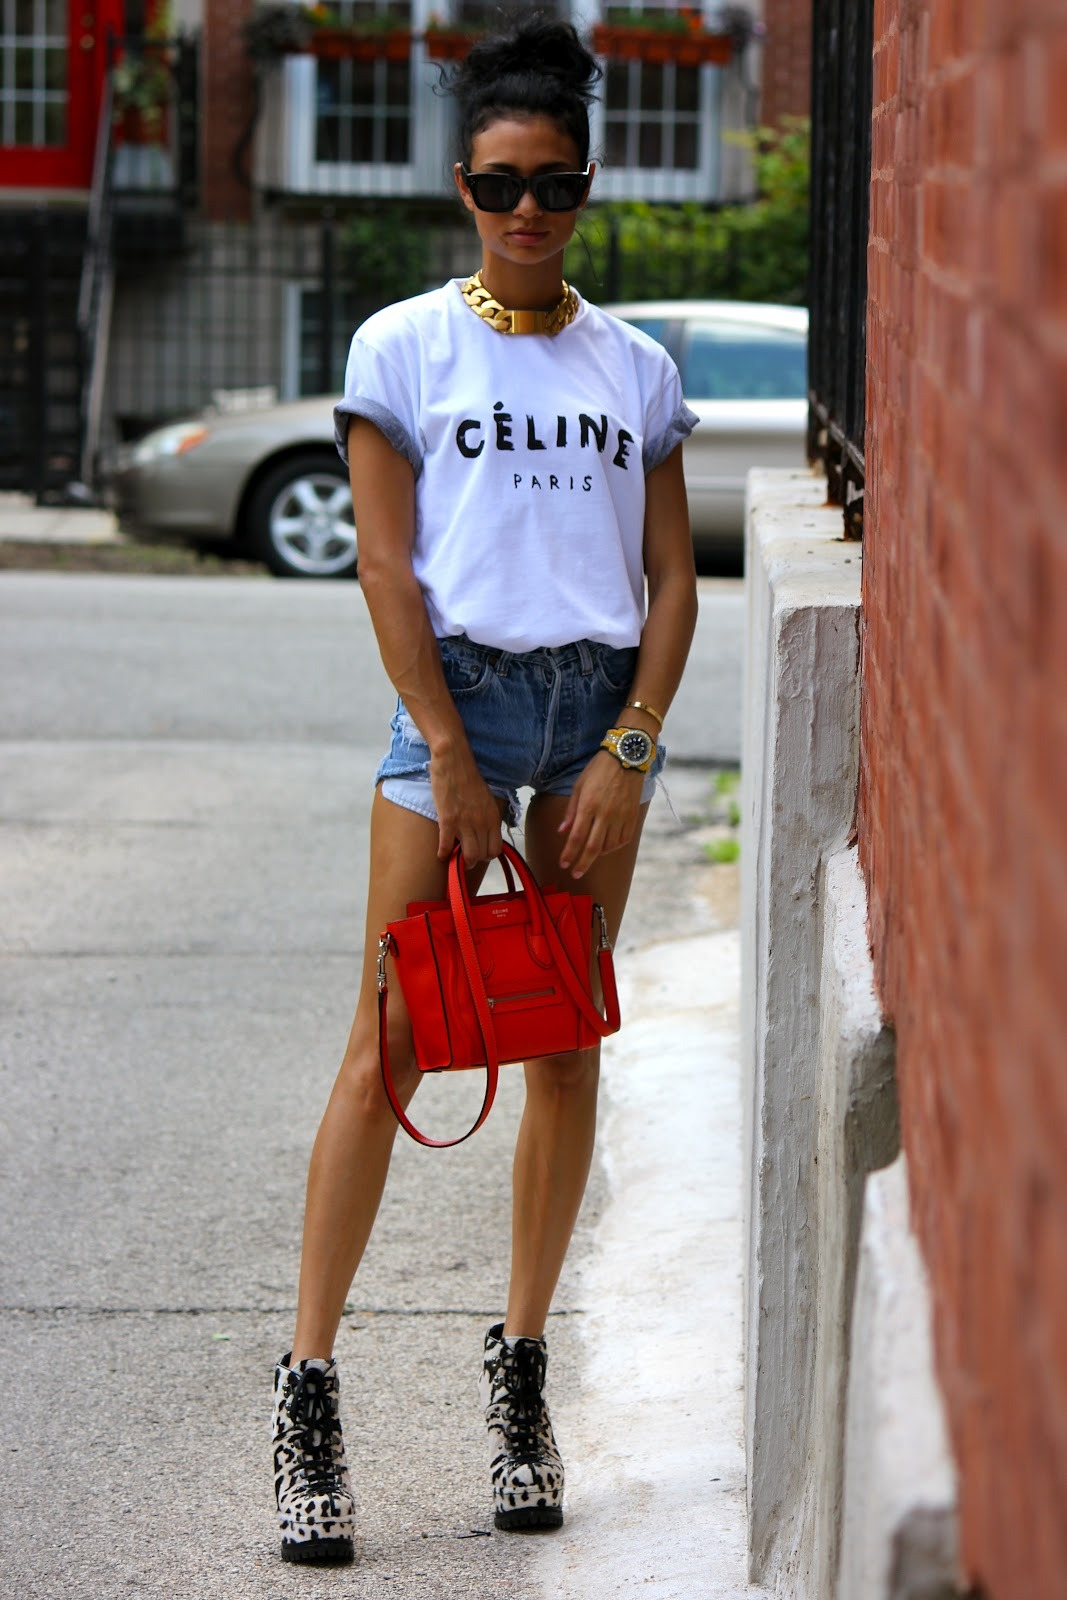 Celine t-shirt with a grey American Apparel 50/50 t-shirt under it. vintage Levi cutoff shorts and Alaia hiking boots.Celine ID necklace (image: mademoisellekdia)